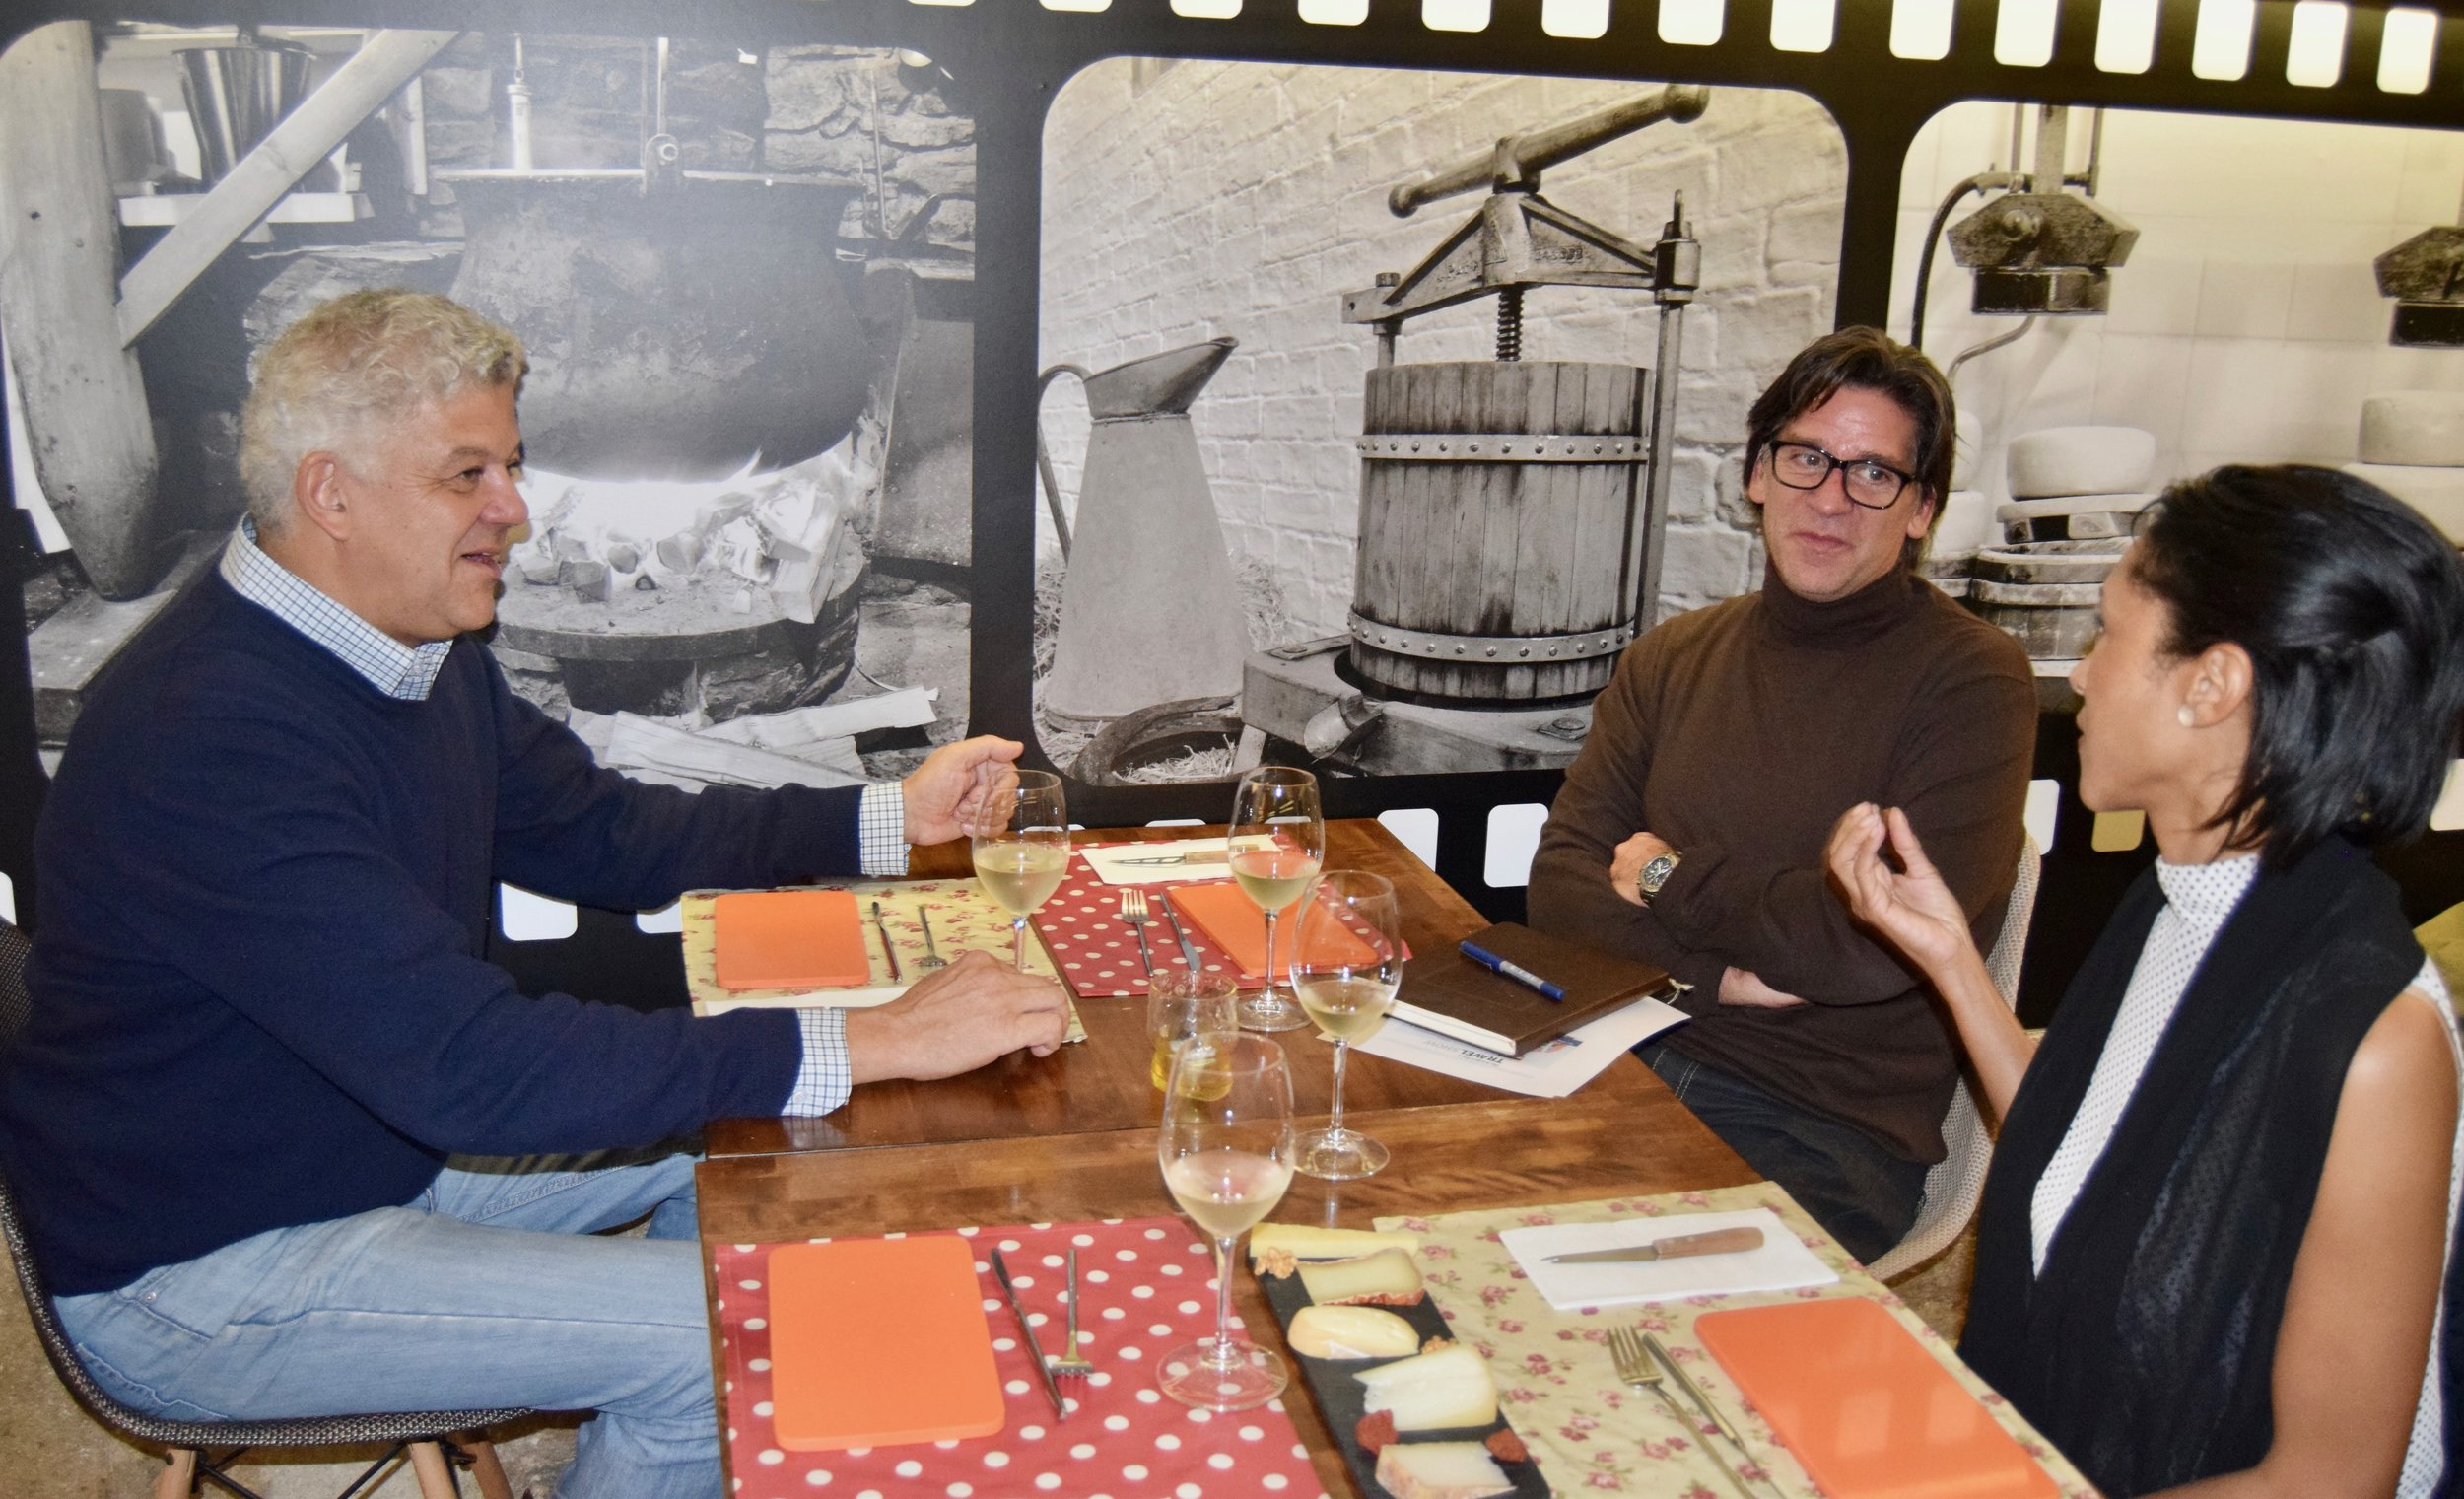 At Queijaria Cheese Shop with owner pedro cardoso and friend andre magalhaes